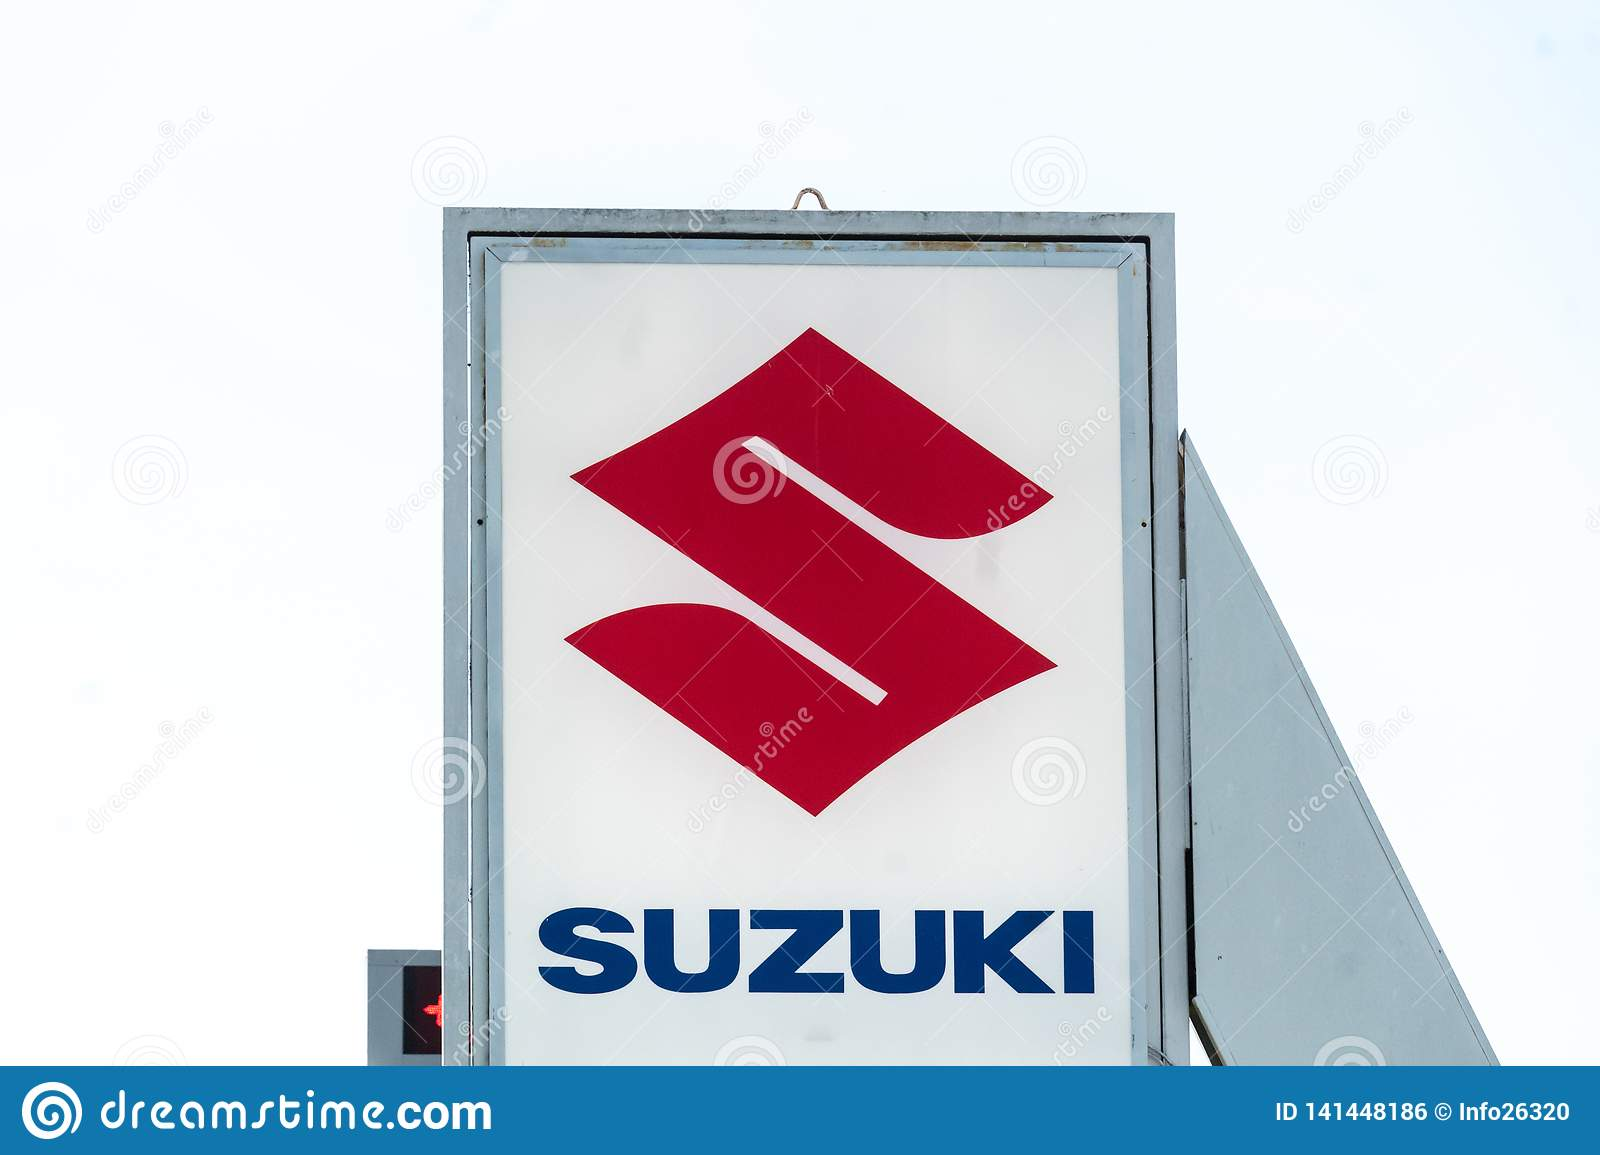 Suzuki Car Dealership >> Suzuki Car Dealership Sign Editorial Photo Image Of